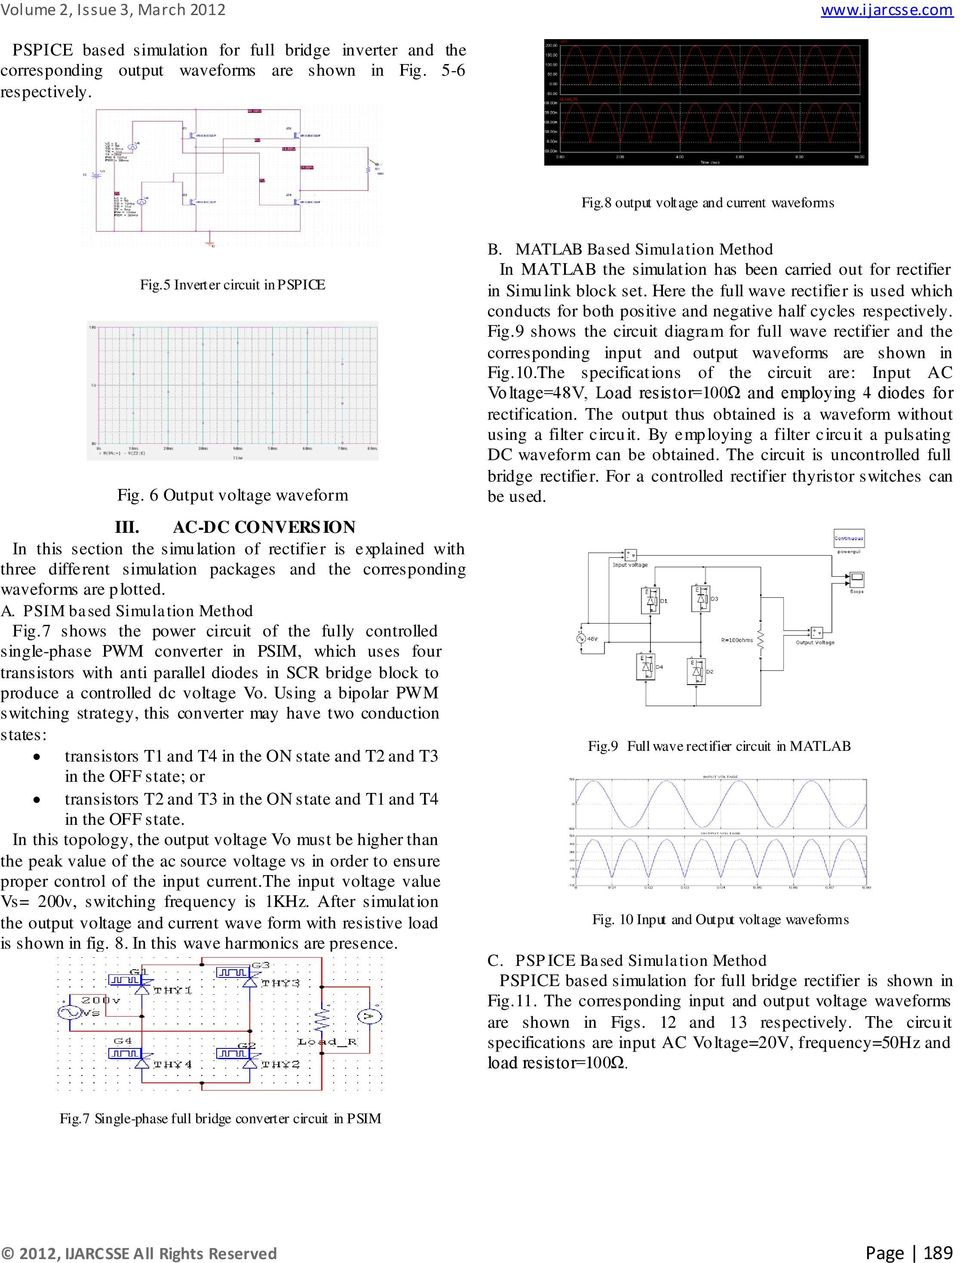 International Journal Of Advanced Research In Computer Science And Full Wave Rectifier Diagram Ac Dc Convers Ion This Section The Simulation Is Explained With Three Fig11